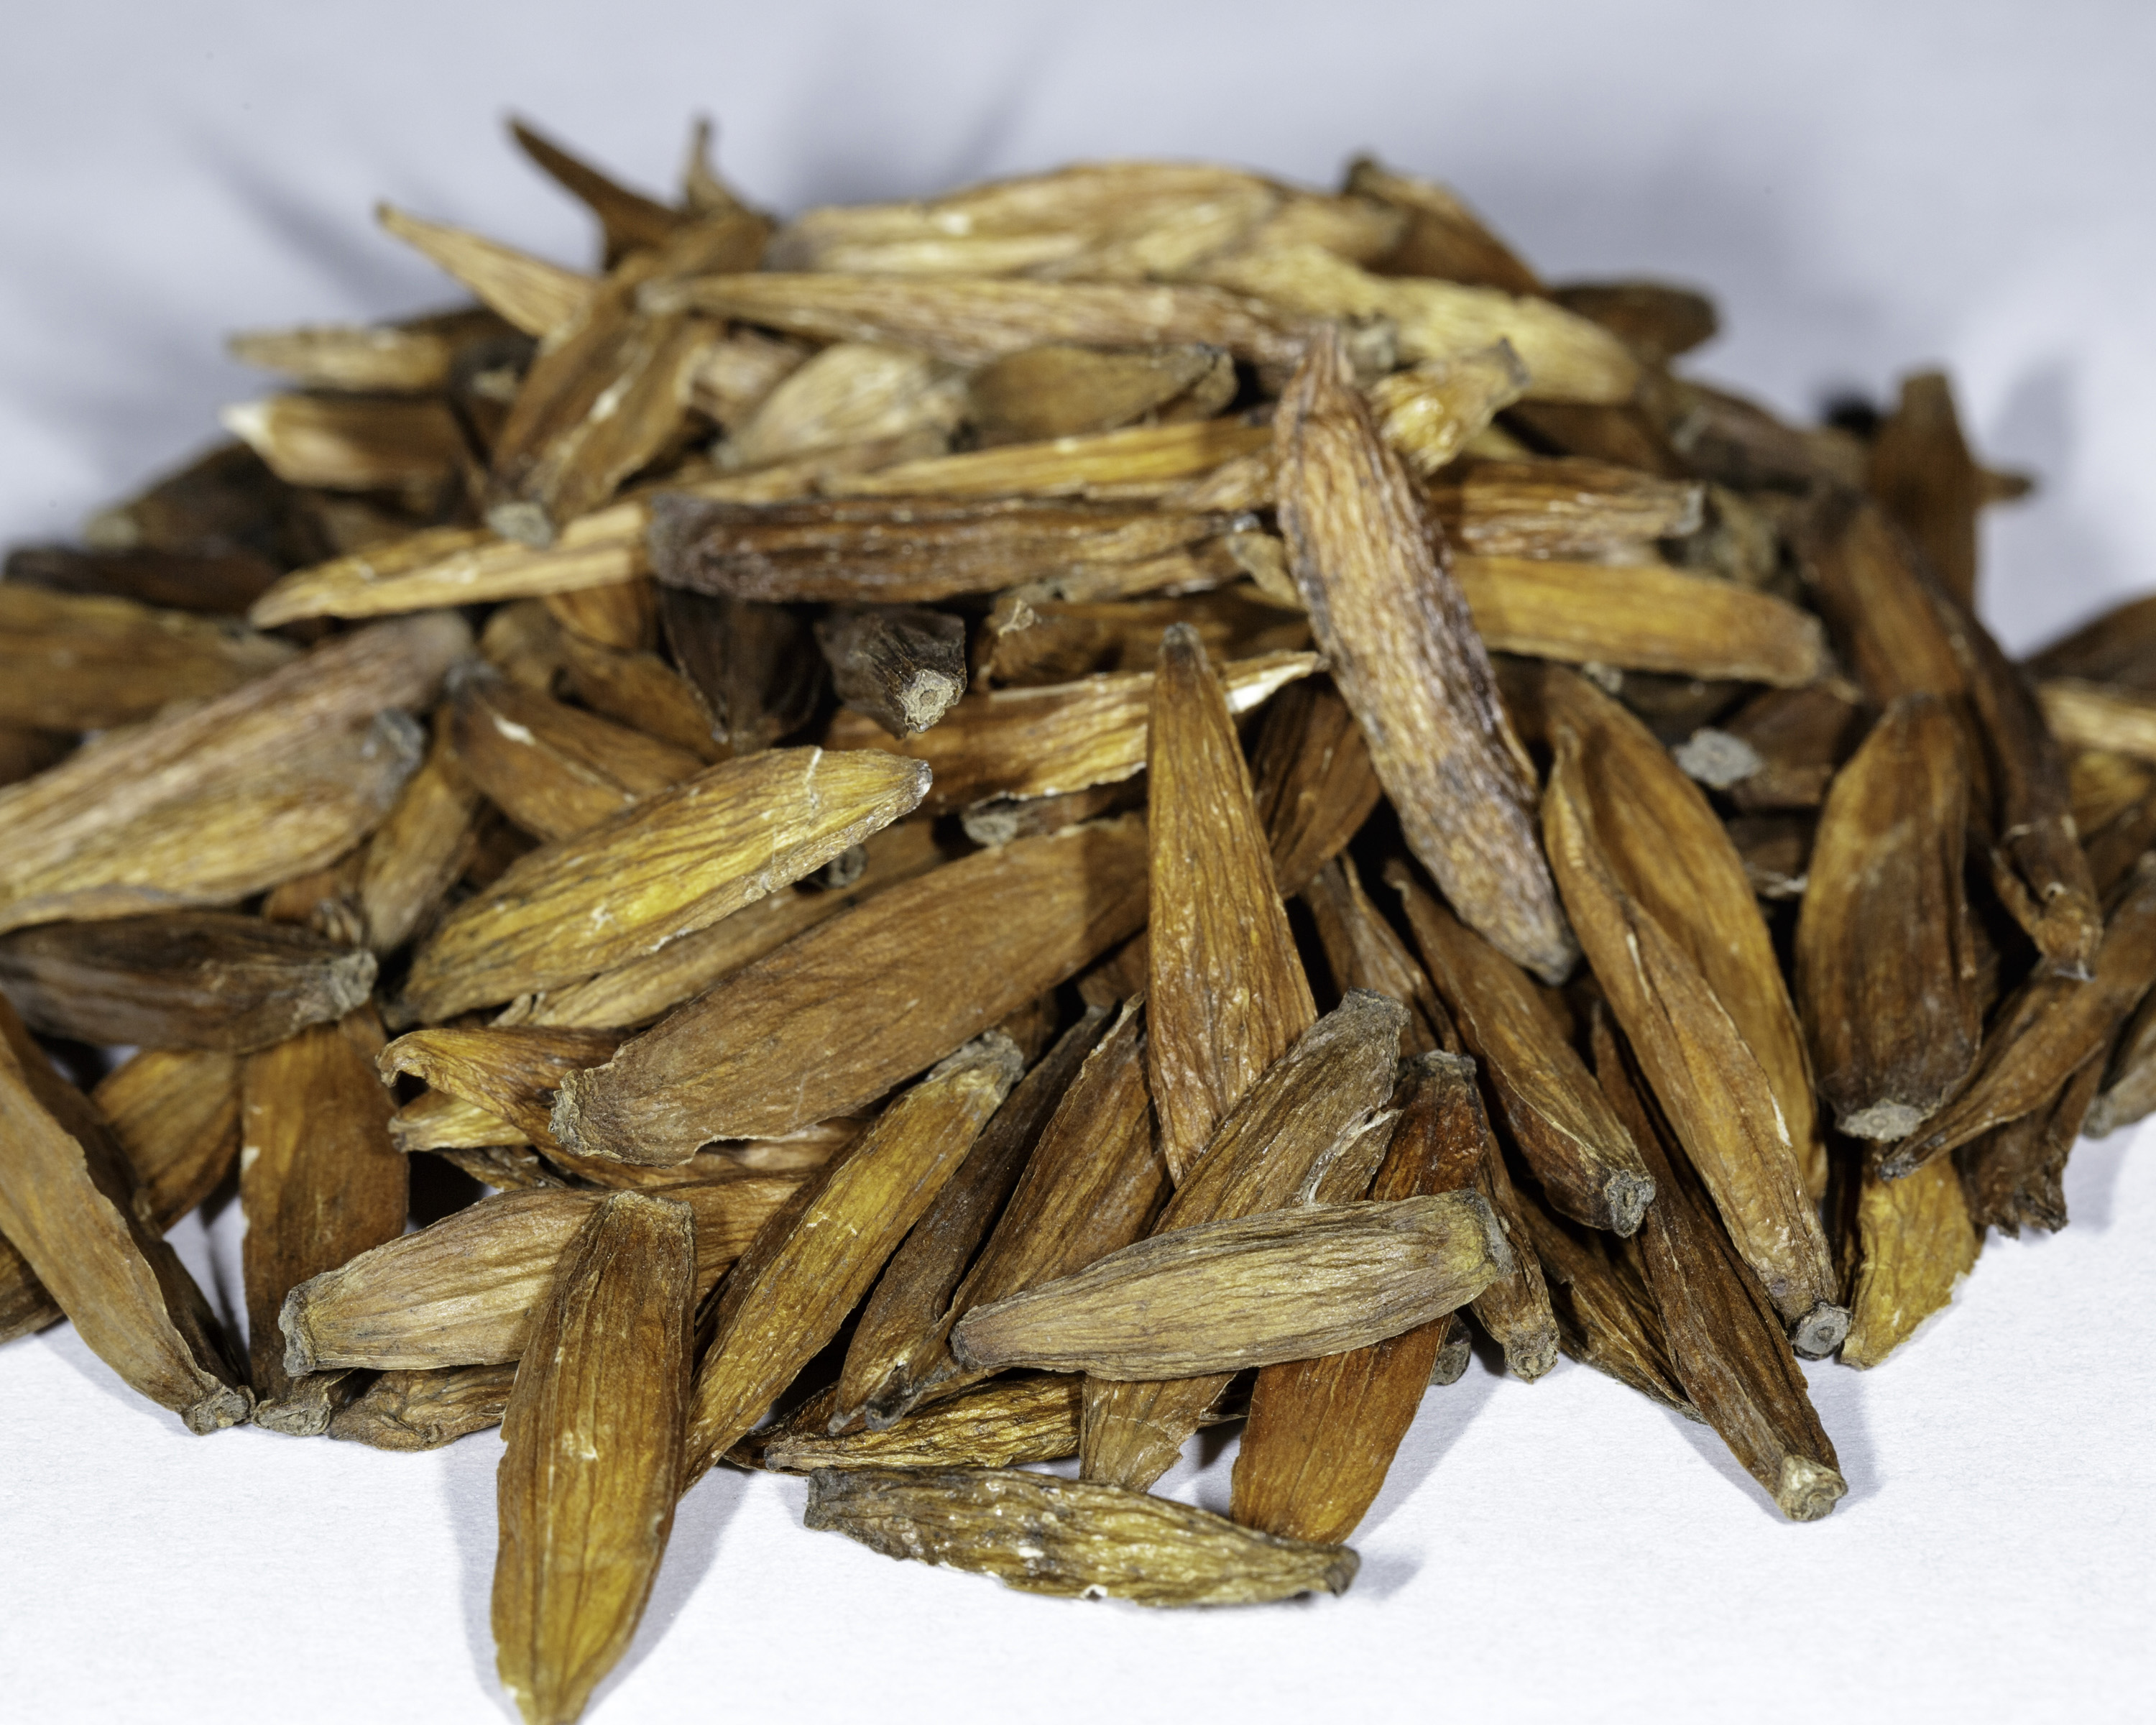 A front angle view of a small pile of Camptotheca acuminata (Cancer Tree) seeds.